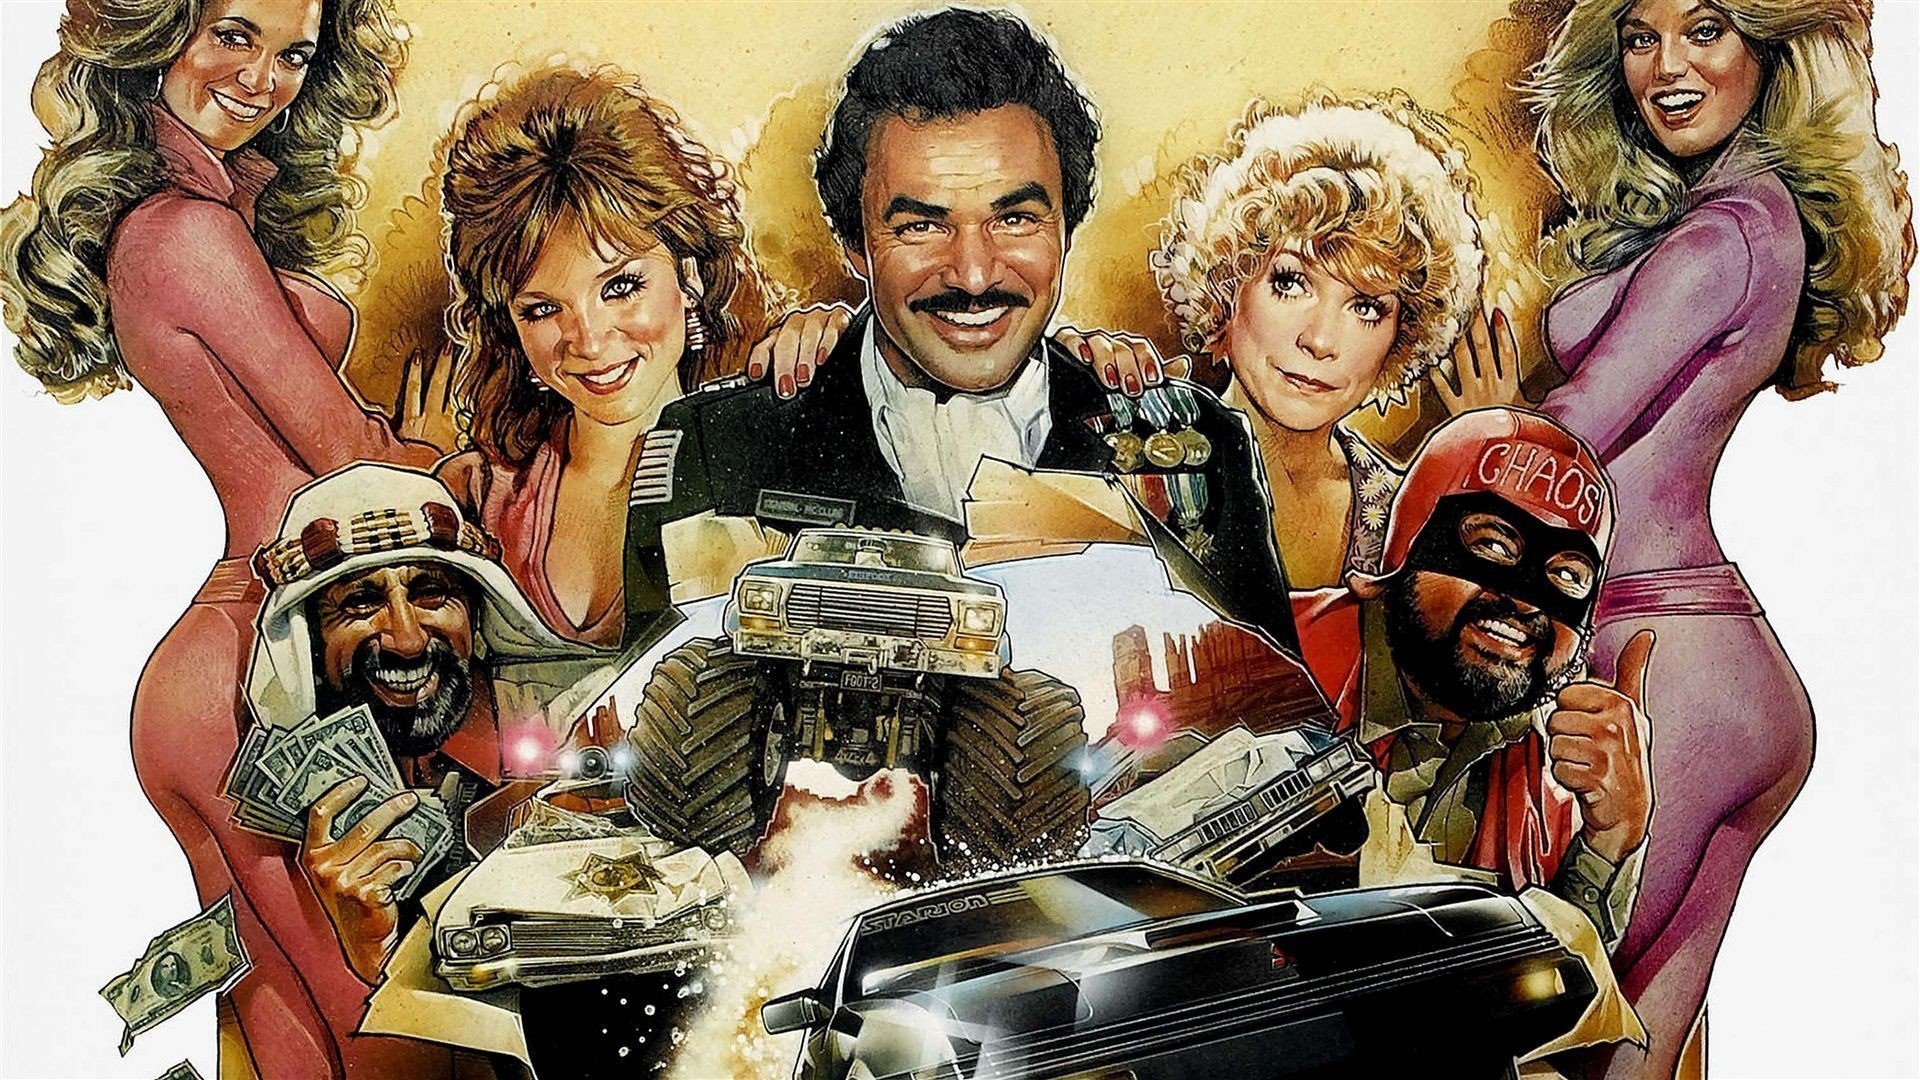 win-the-cannonball-run-the-cannonball-run-ii-on-blu-ray.jpg